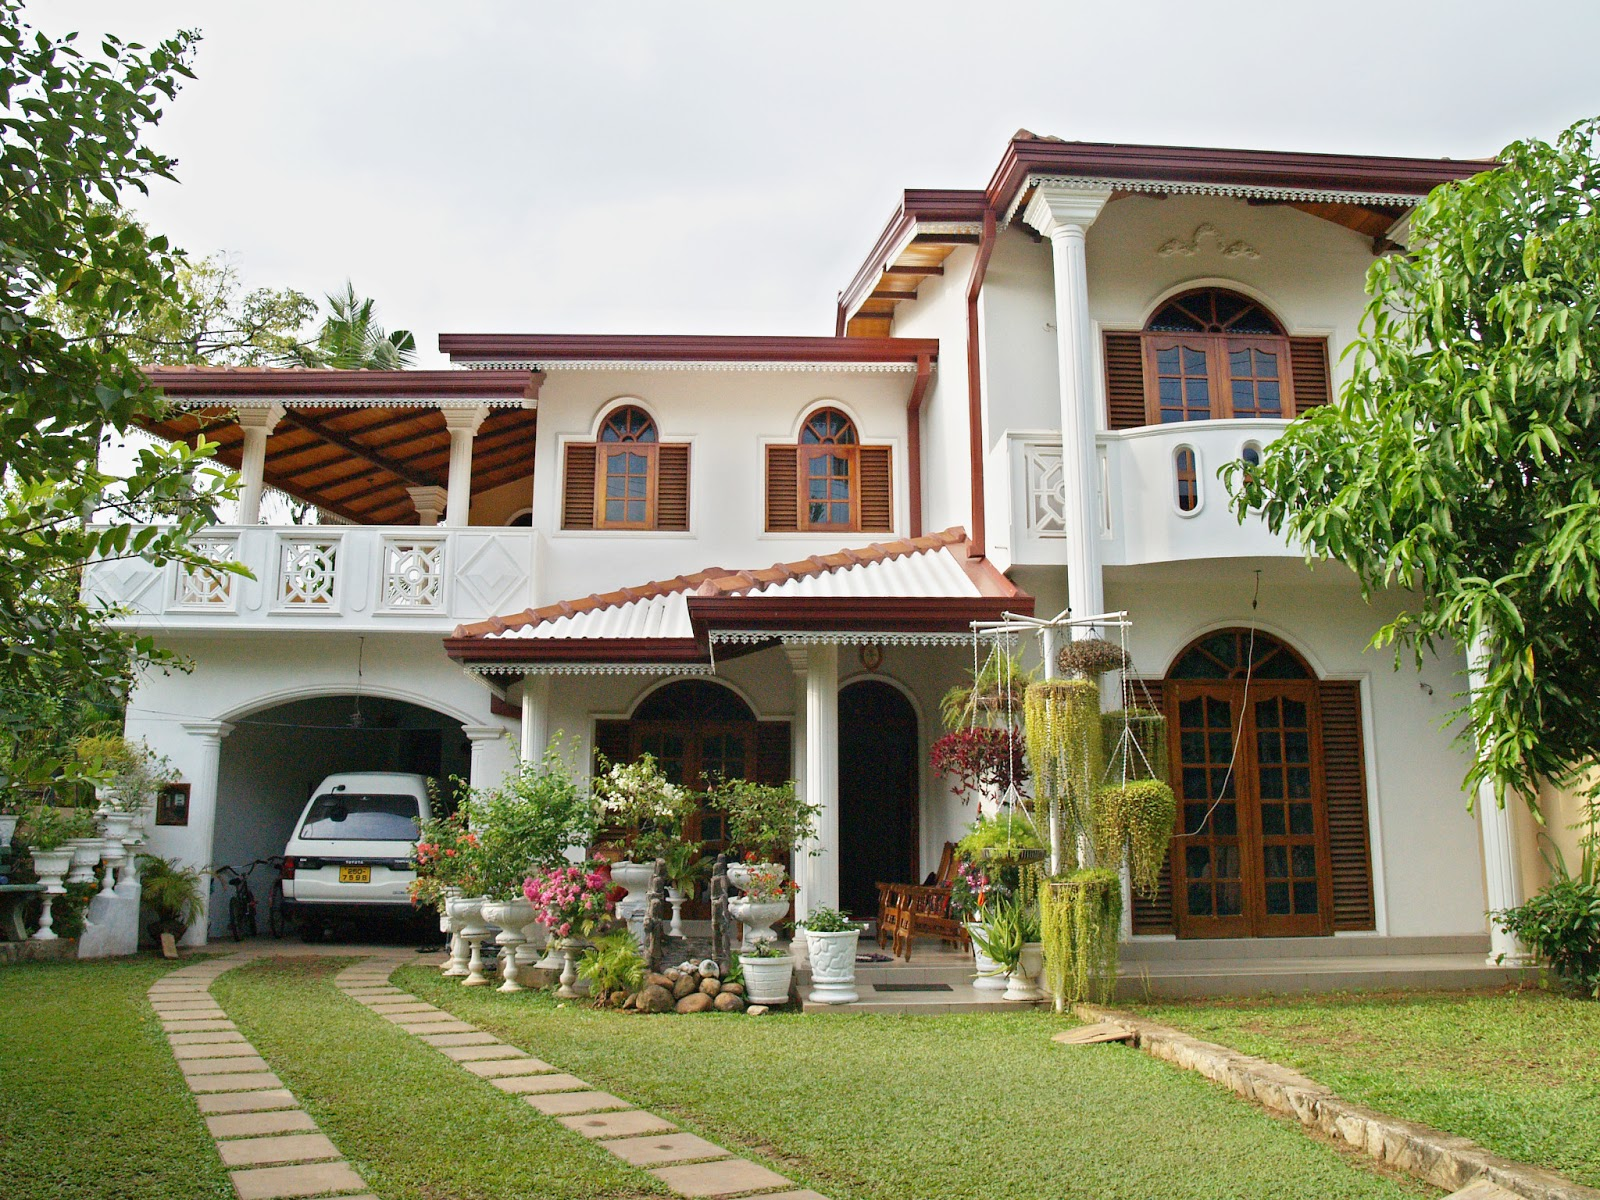 Home Design In Sri Lanka Of House Plans And Design Modern House Plans Of Sri Lanka